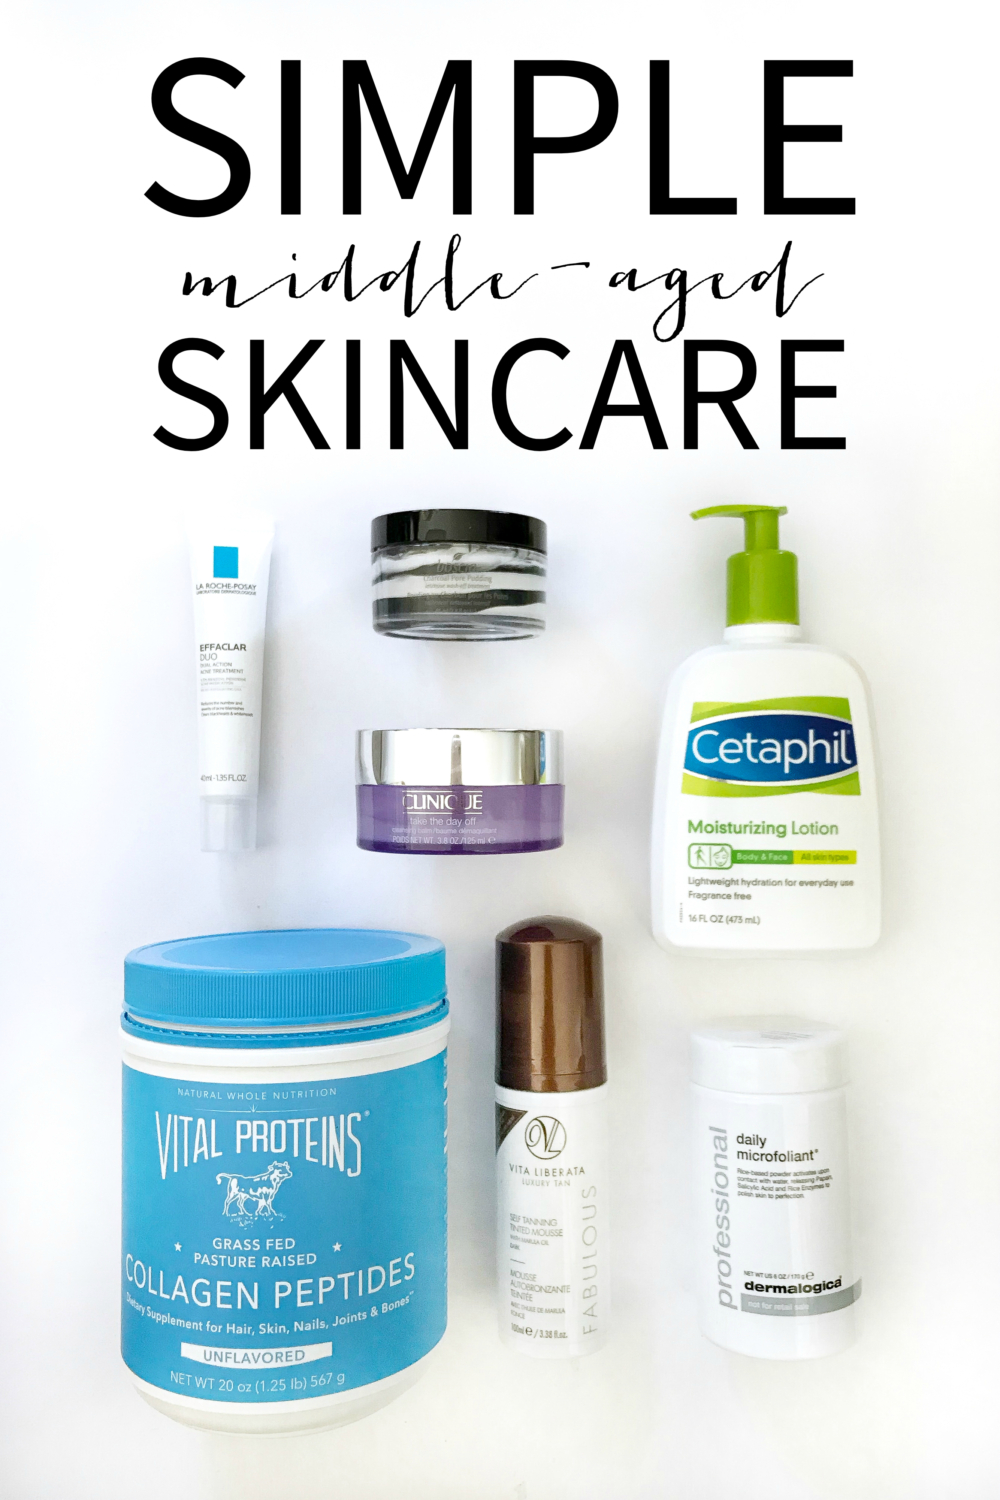 And easy-to-follow middle aged skincare routine with simple steps and products to use, that will keep your face, clear, healthy, and looking fresh!